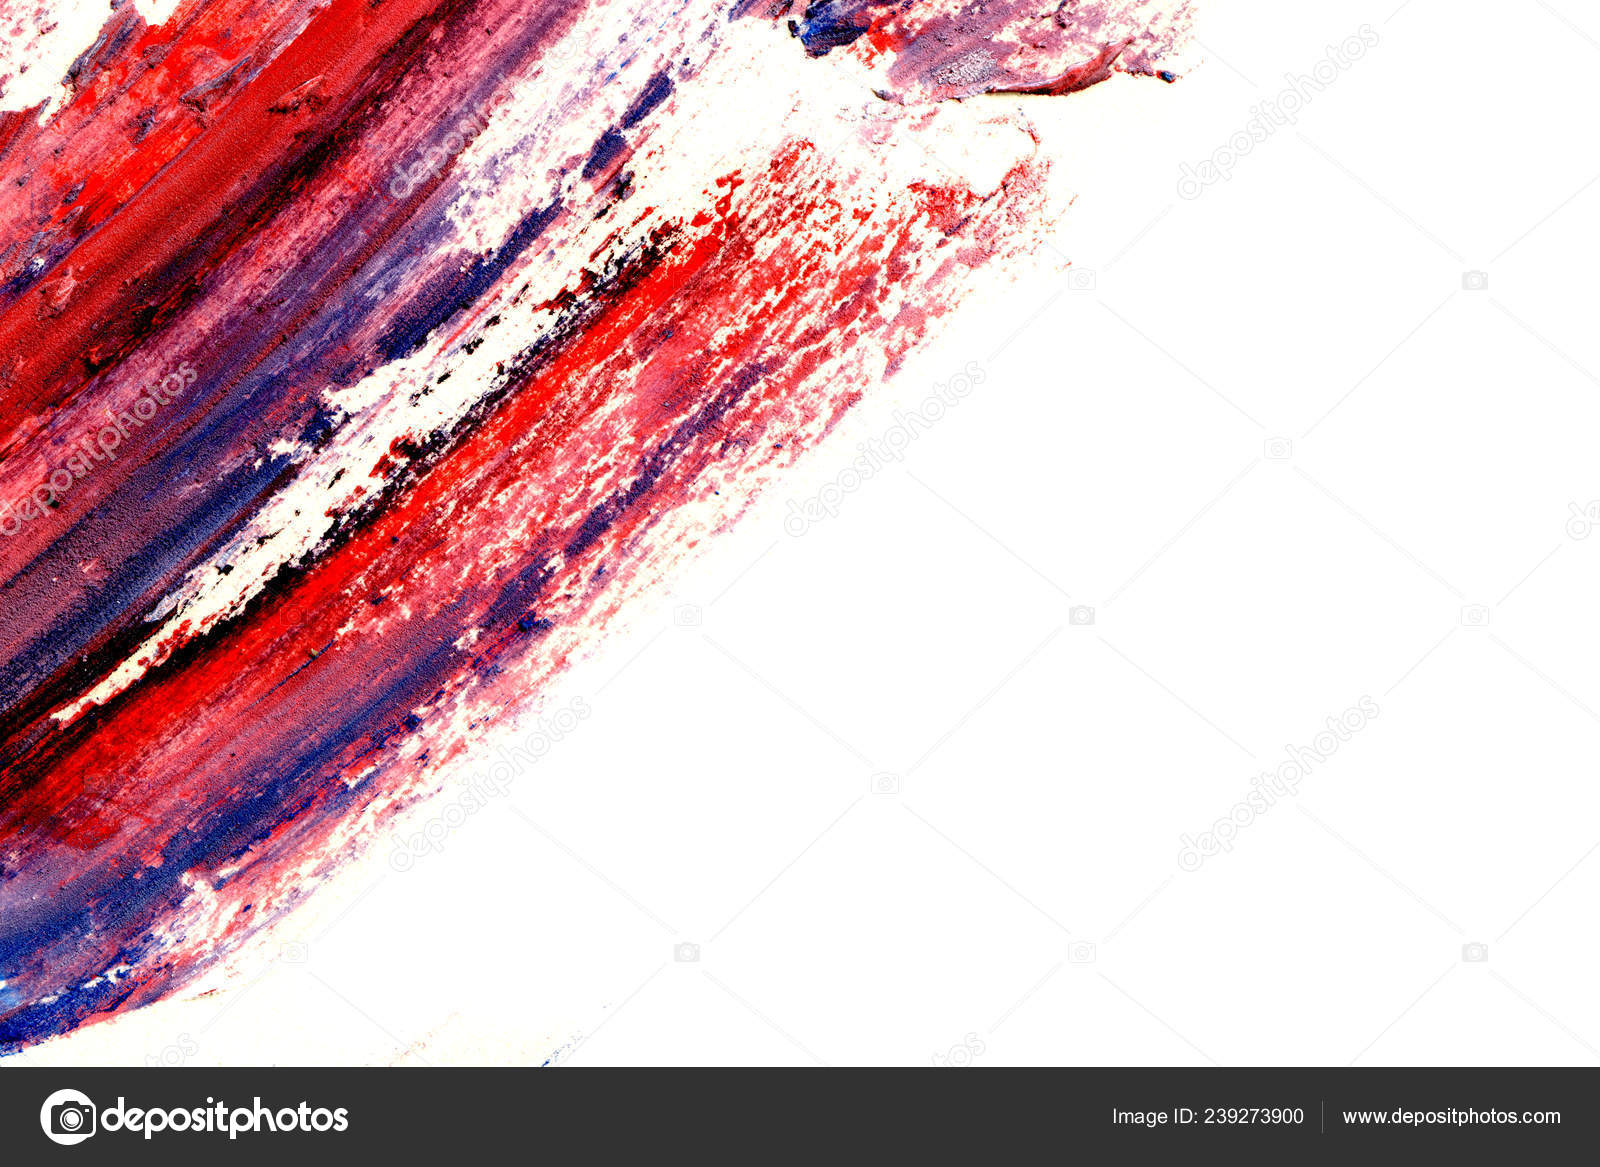 Abstract Ink Background Marble Style Blue Red Paint Stroke Texture Stock Photo C Sashkovna 239273900